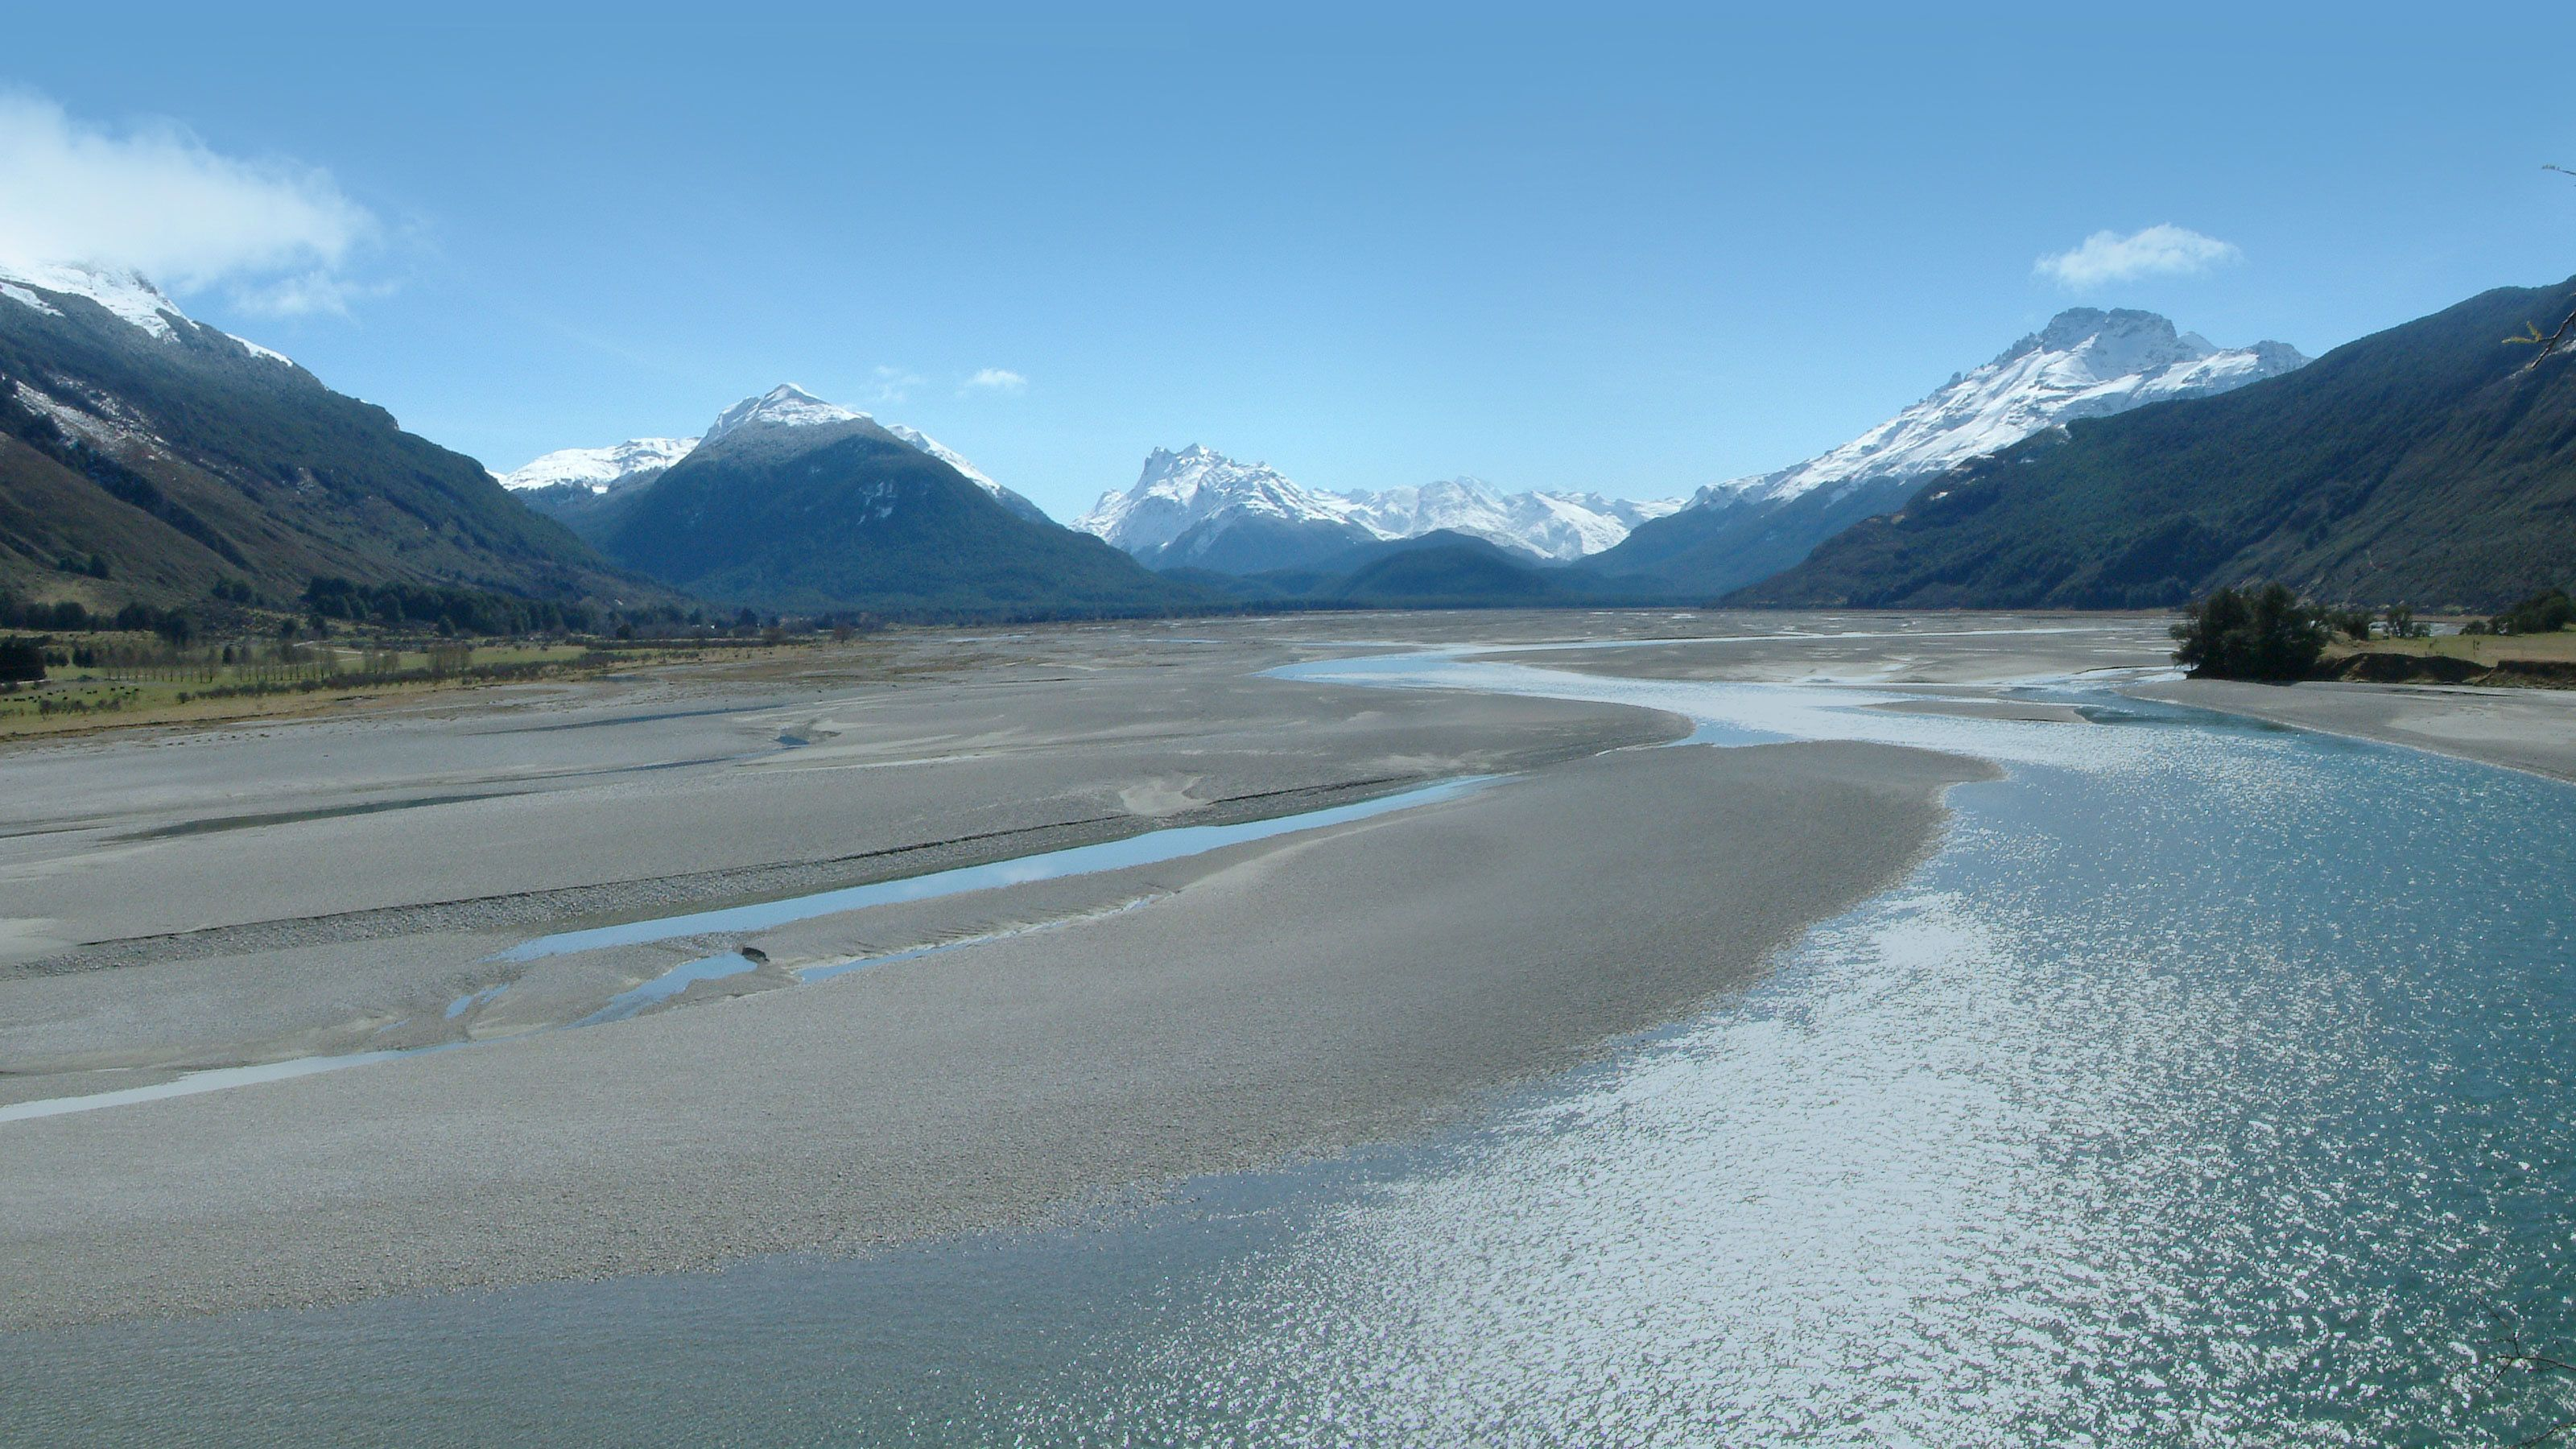 visiting the gravely beach in New Zealand